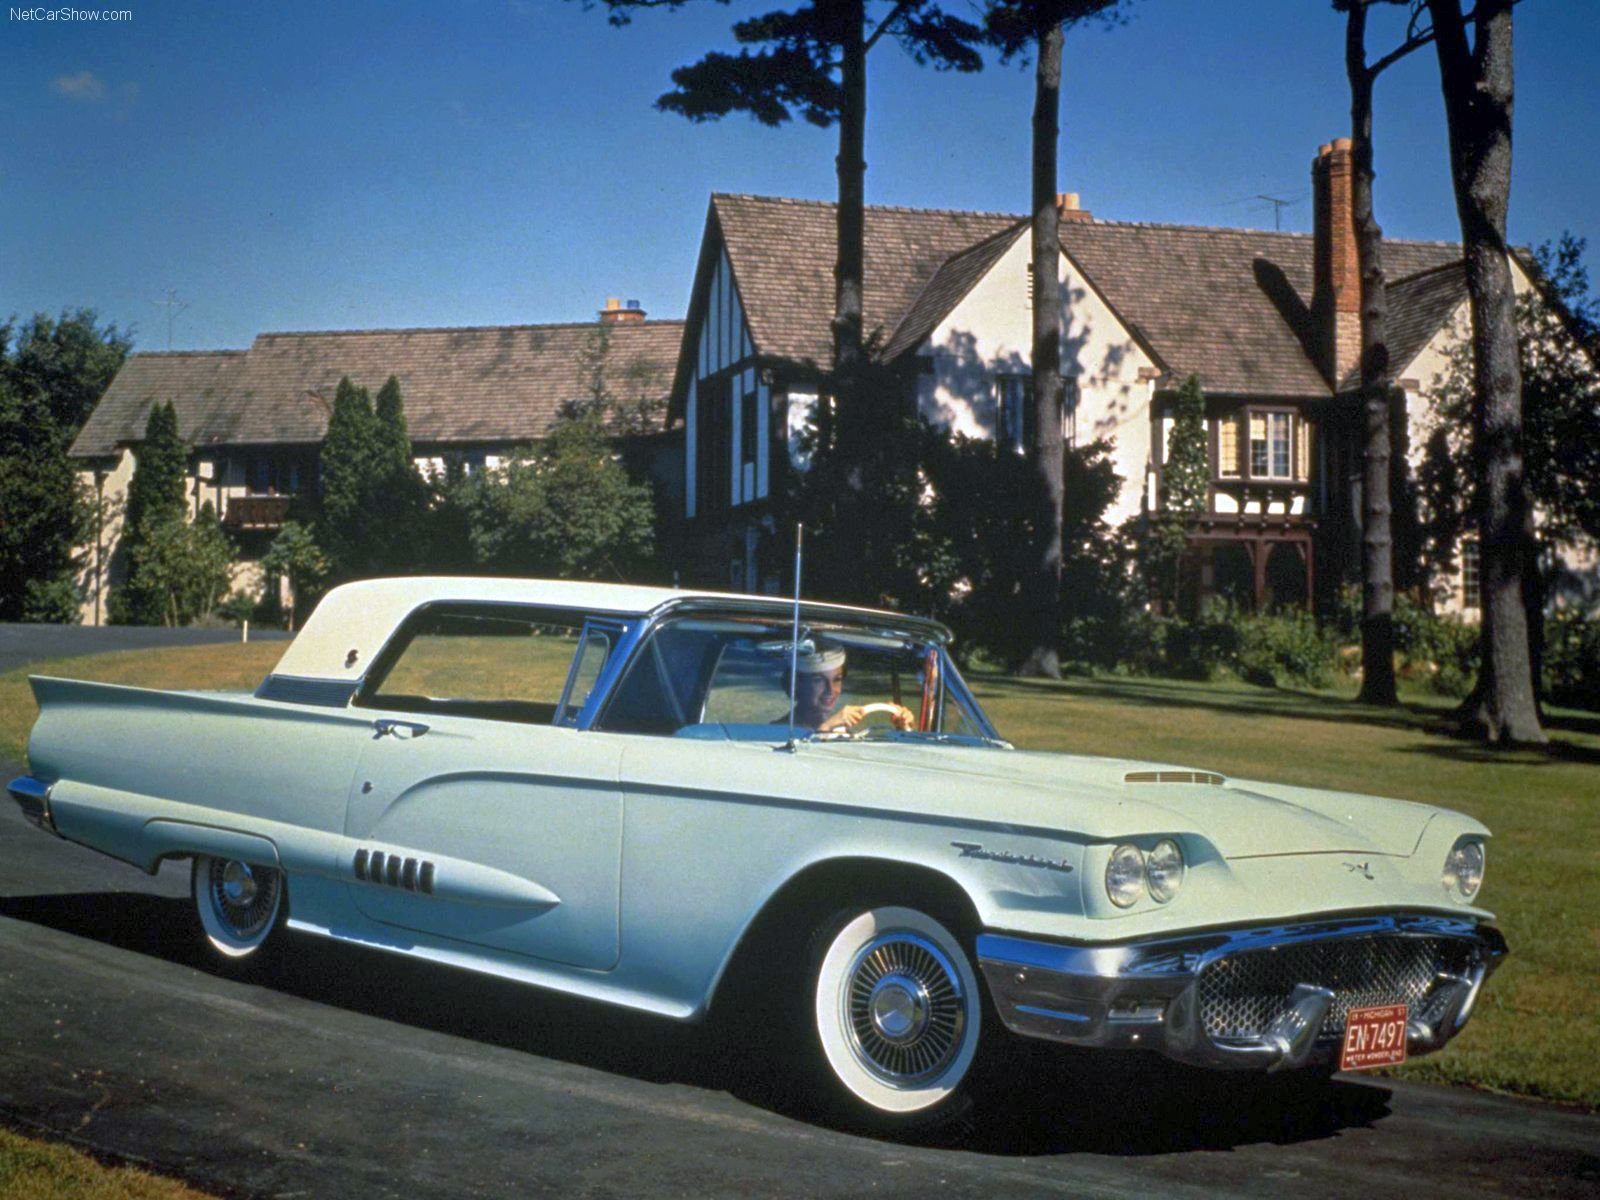 High Resolution Ford Thunderbird Hd 1600x1200 Wallpaper ID6899 For Computer